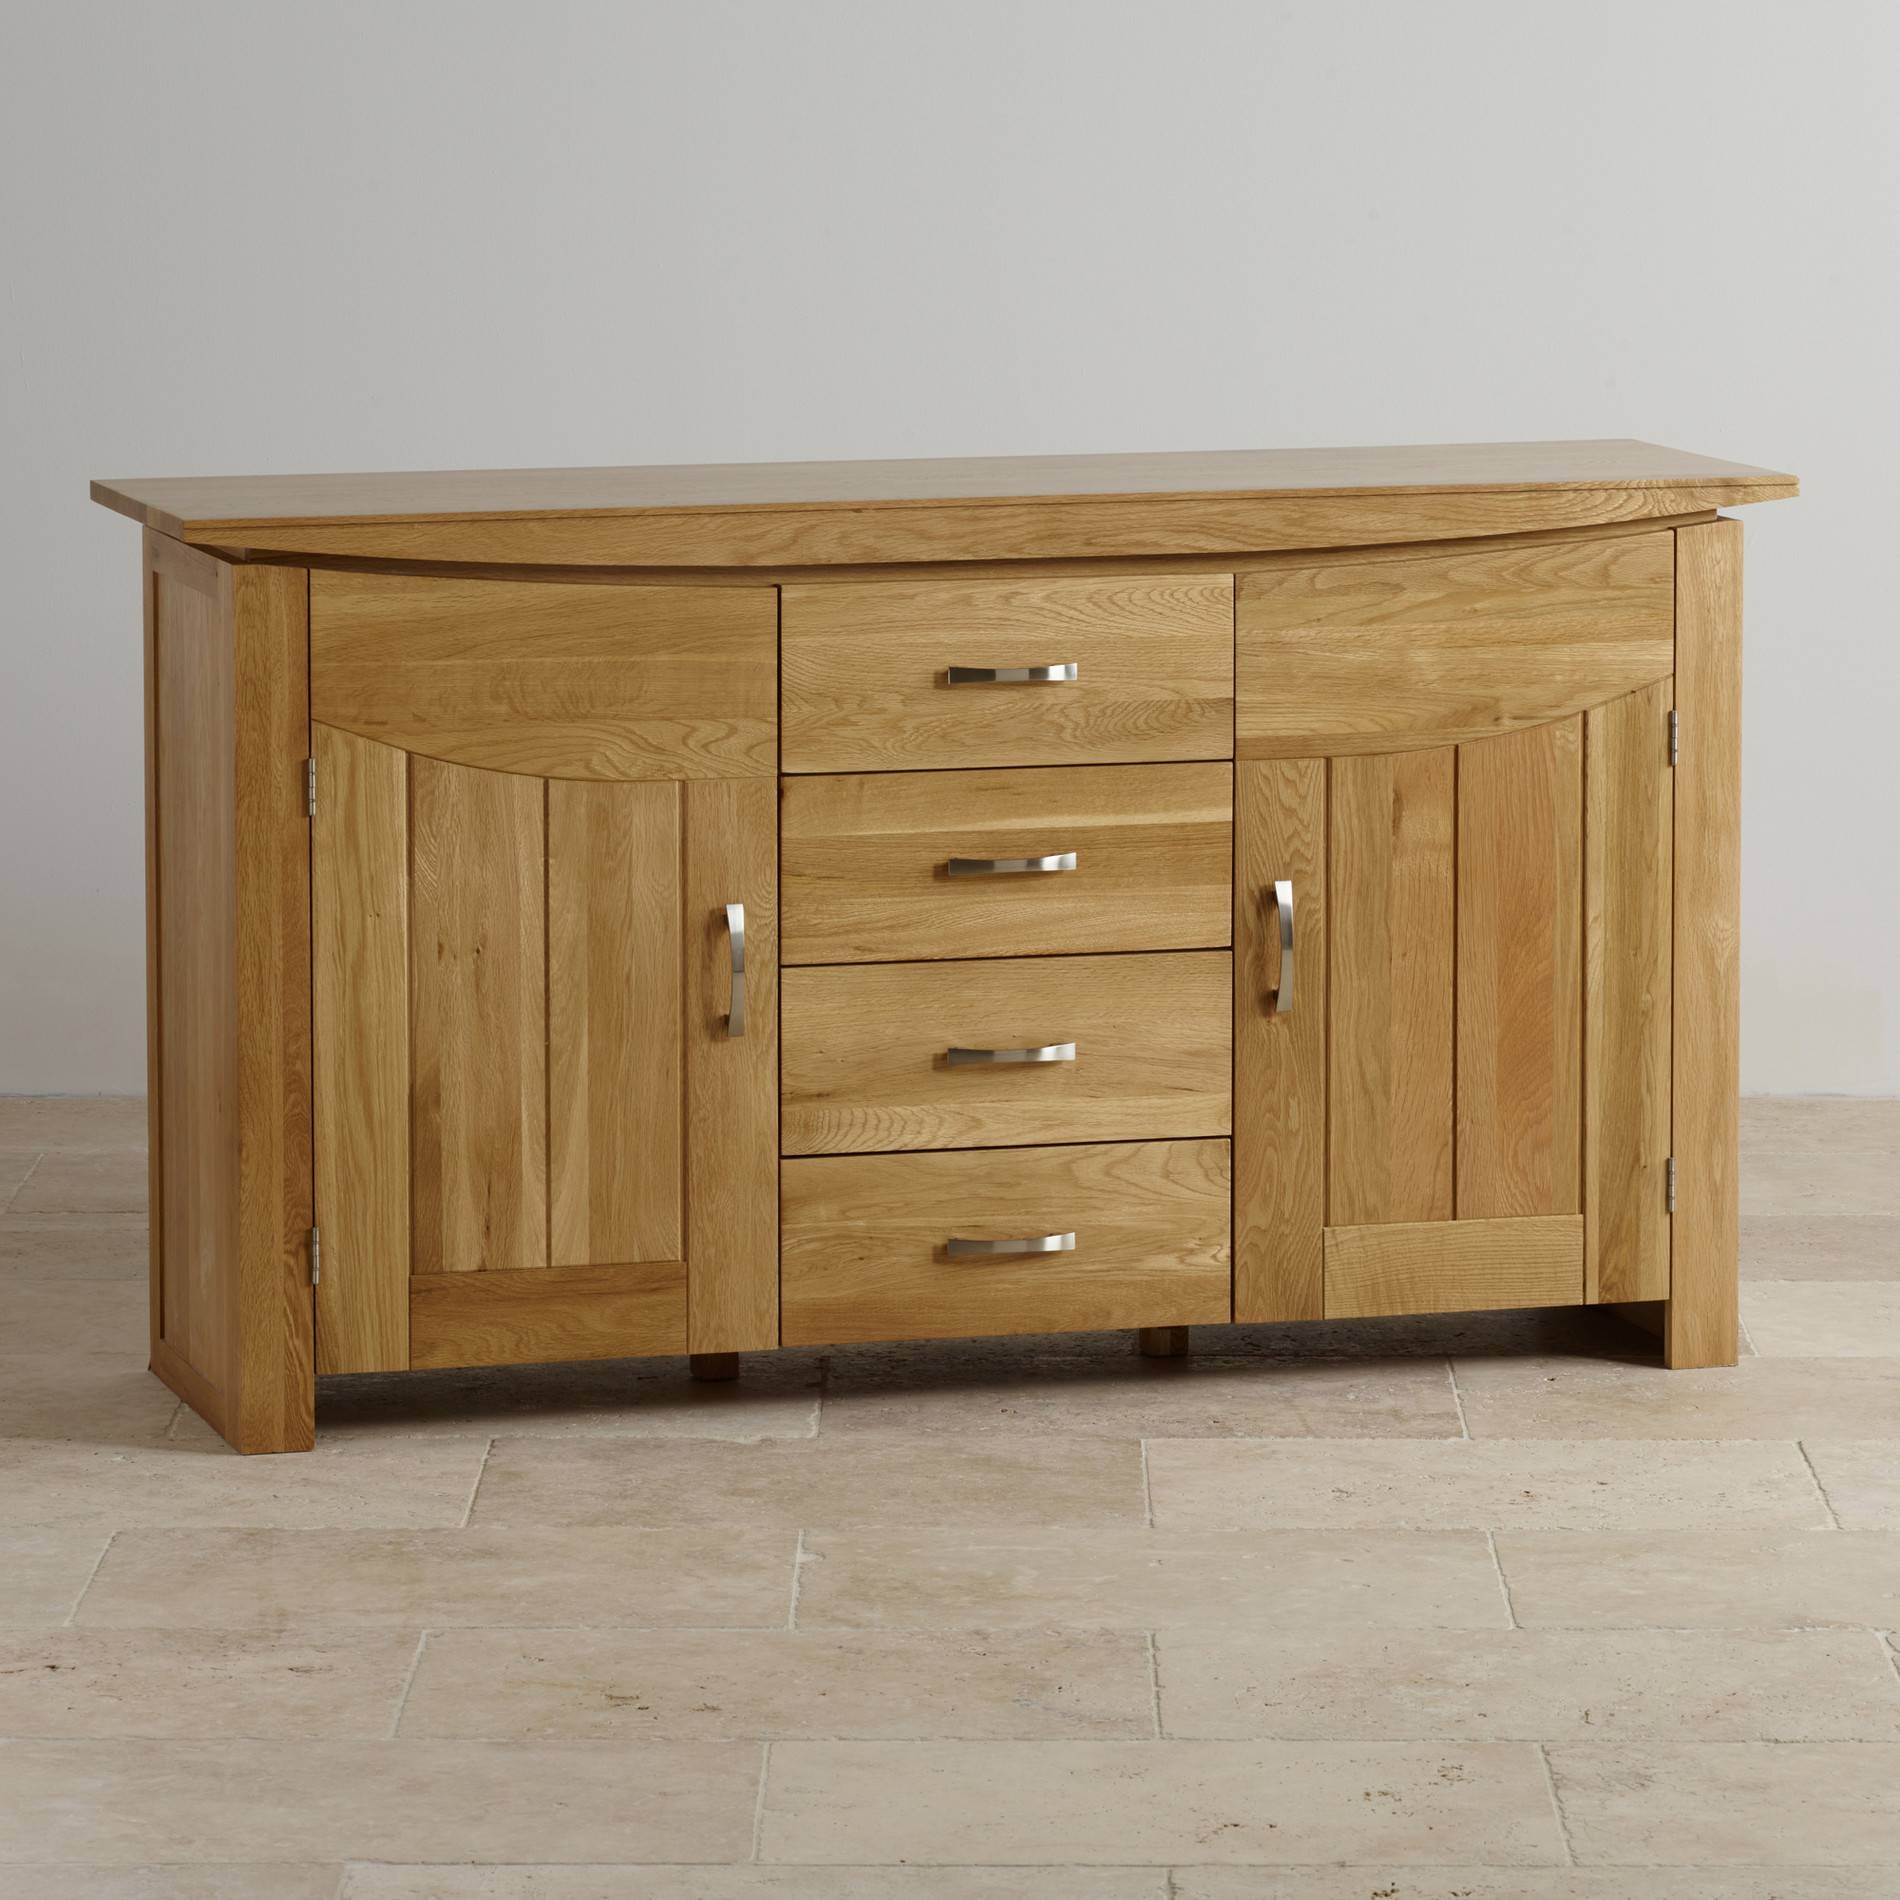 Popular Photo of Natural Oak Sideboards